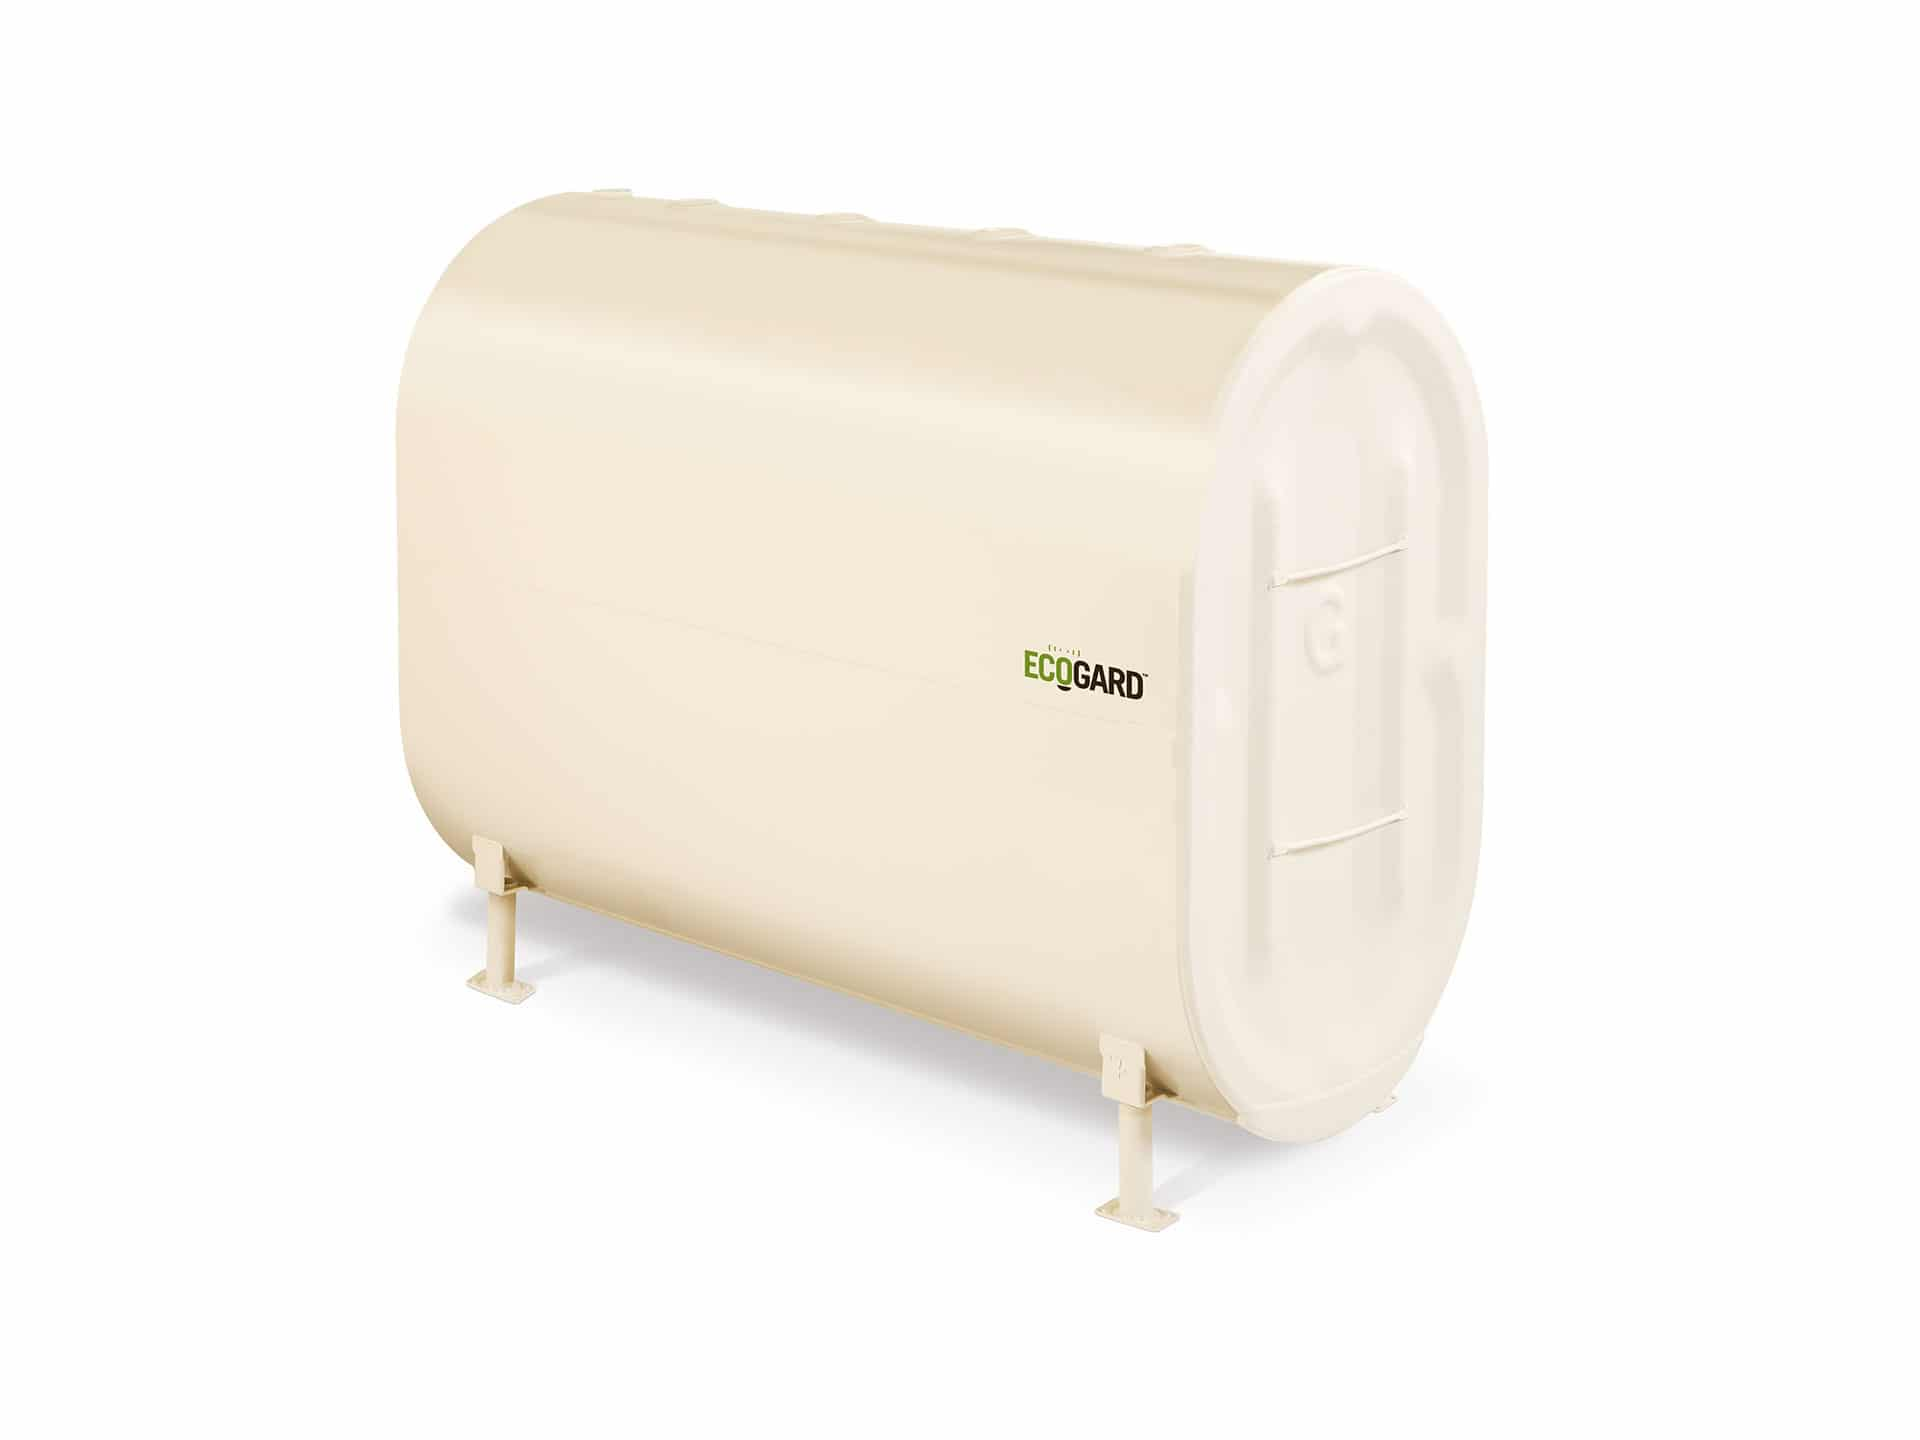 Ecogard Double Bottom Tank Granby Industries